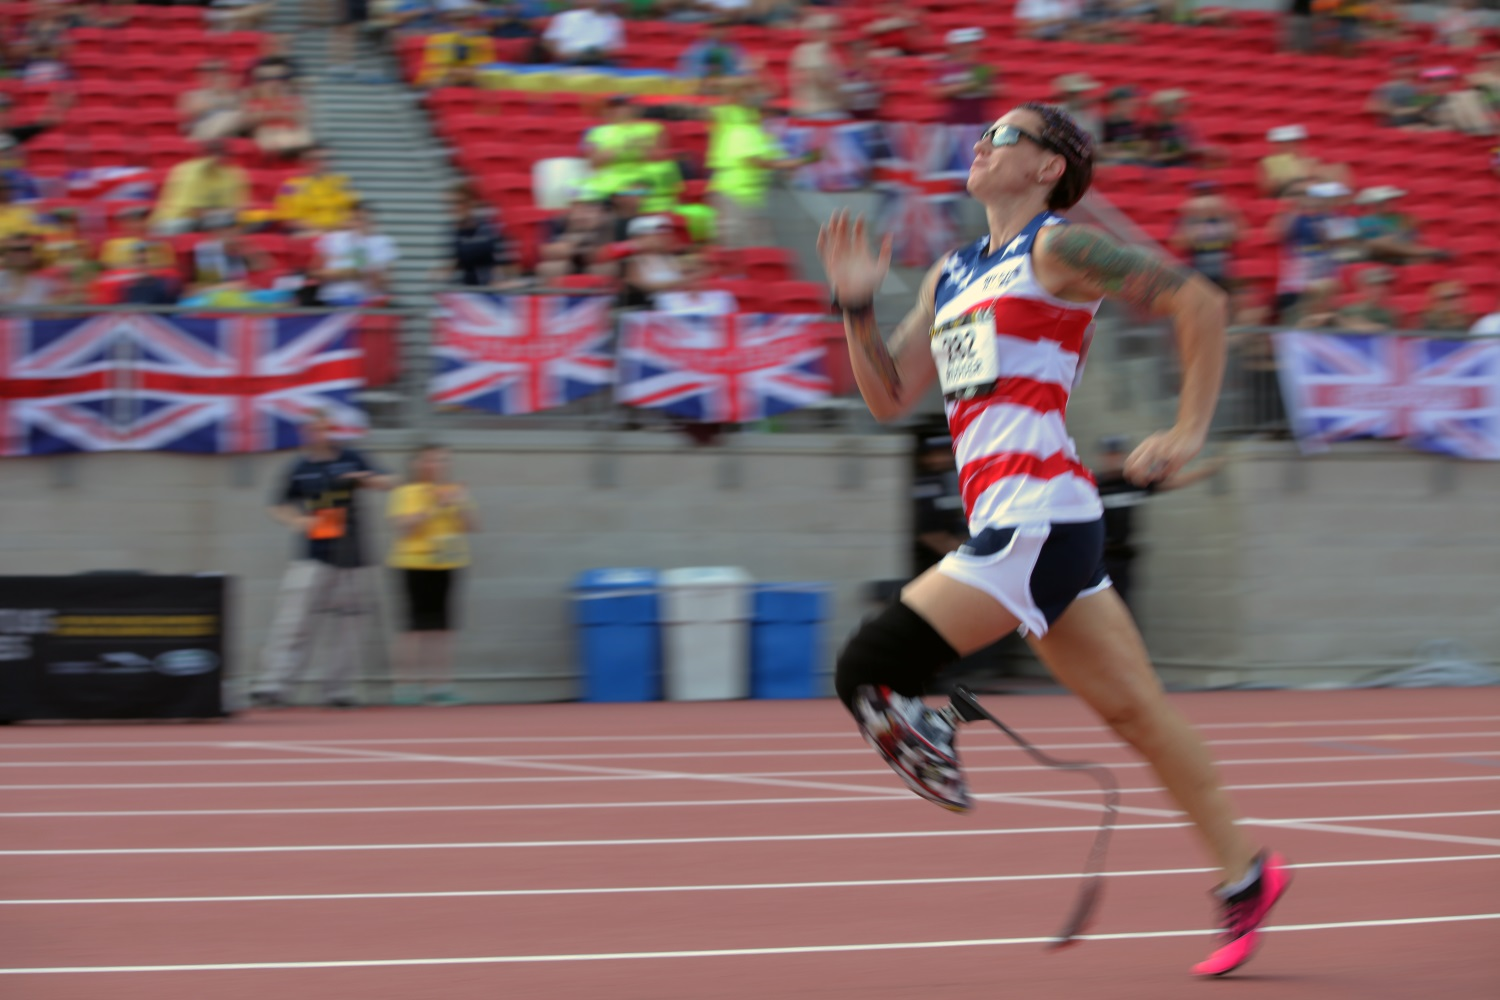 Retired Marine Corps Lance Cpl. Sarah Rudder competes in the Invictus Games' 200-meter dash event at York Lions Stadium in Toronto, Canada, on Sept. 24, 2017. Invictus Games includes wheelchair basketball, wheelchair rugby, sitting vollyball, archery, cycling, para-ice hockey, wheelchair tennis, powerlifting, golf, swimming and indoor rowing. (Staff Sgt. Daniel Luksan/Army)